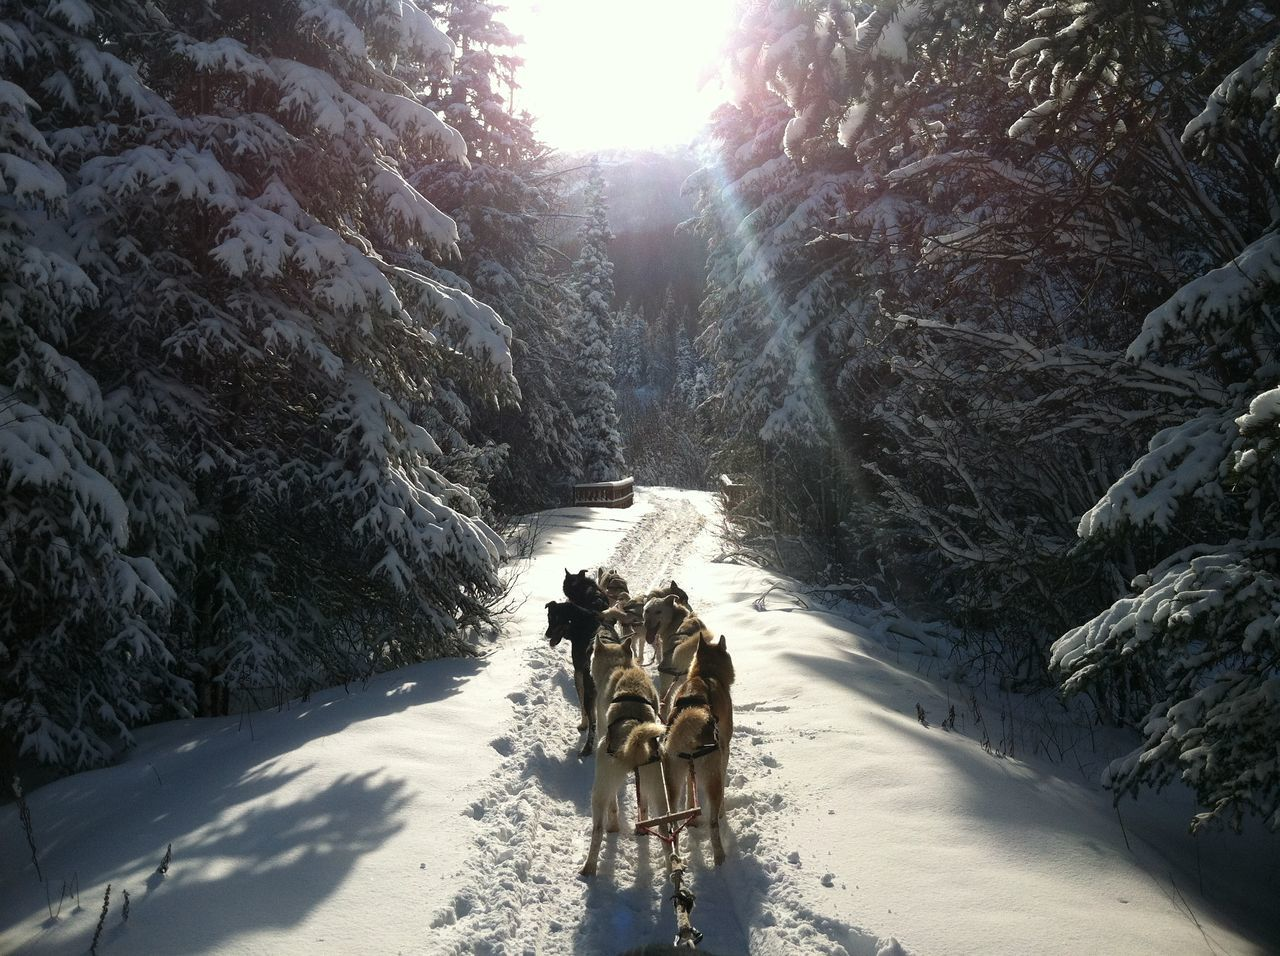 Adventure Alaska Alaskalife Alaskan Nature Beautiful Beauty In Nature Dog Dogmushing Eagle Fresh Air Landscape Lifeisgood Meditation Mushing Nature Outdoor Photography S Snow Tranquil Scene Tranquility Winter Winter Trail Winteradventures Winterscapes Winterwonderland First Eyeem Photo